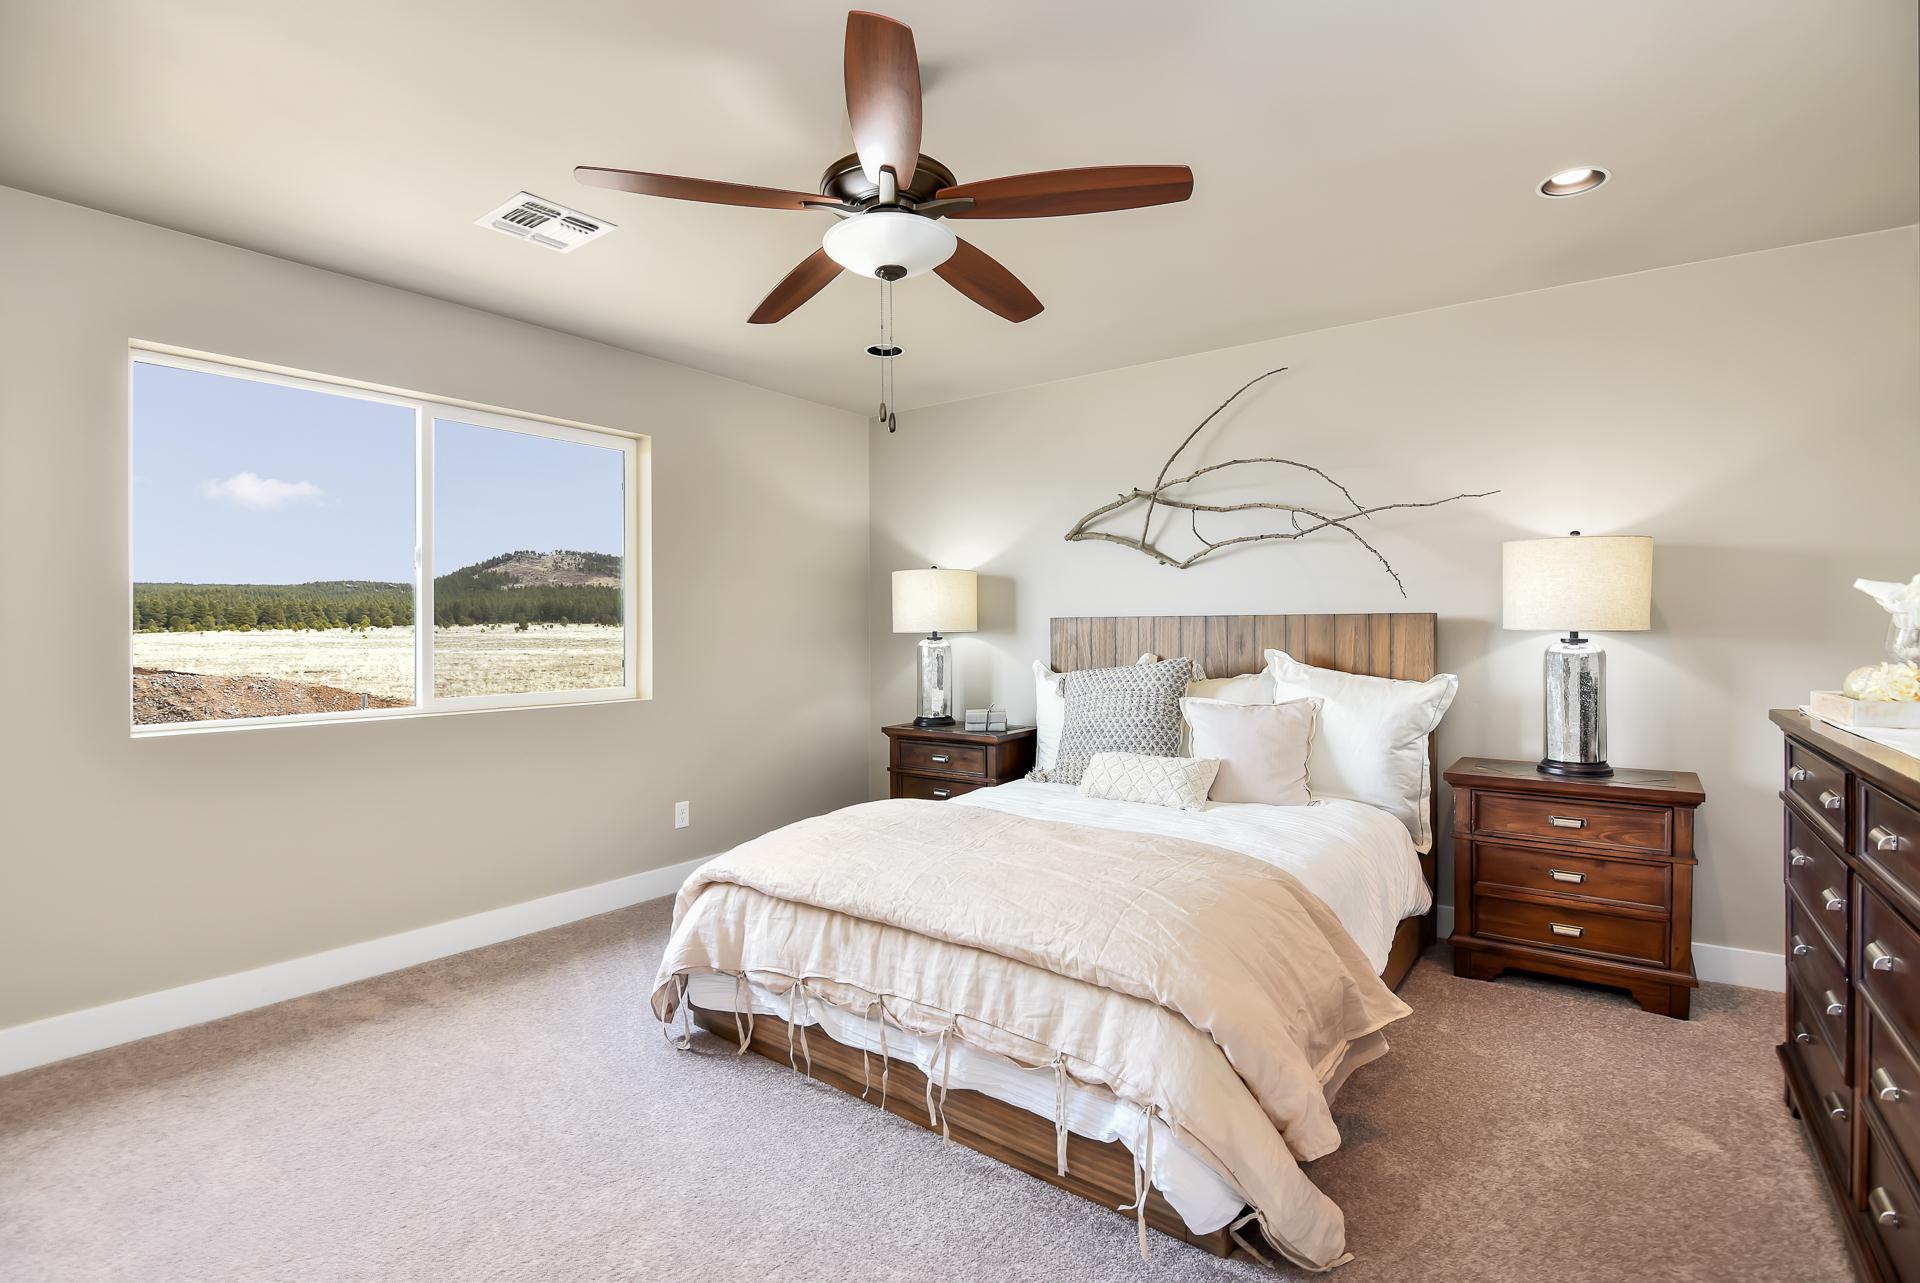 Bedroom featured in the Flagstaff Meadows Plan 1941 By Capstone Homes in Flagstaff, AZ